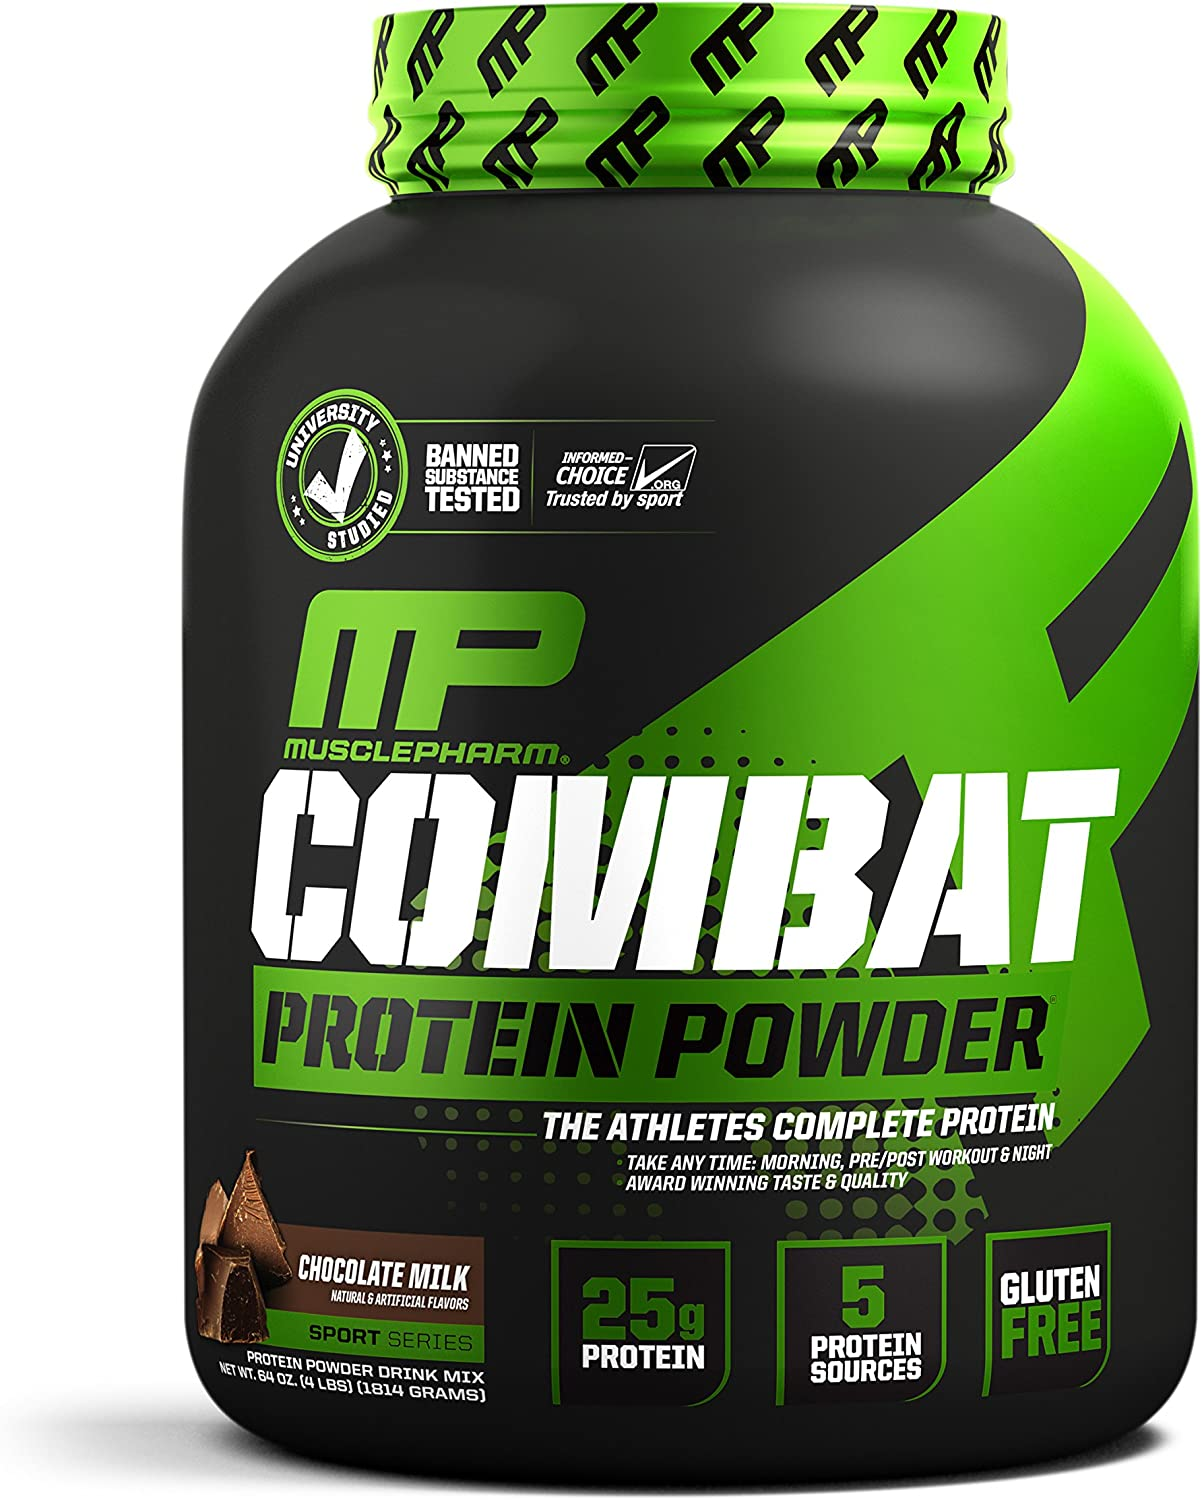 MusclePharm Combat Protein Powder, 5 Protein Blend, Chocolate Milk, 4 Pounds, 52 Servings: Health & Personal Care